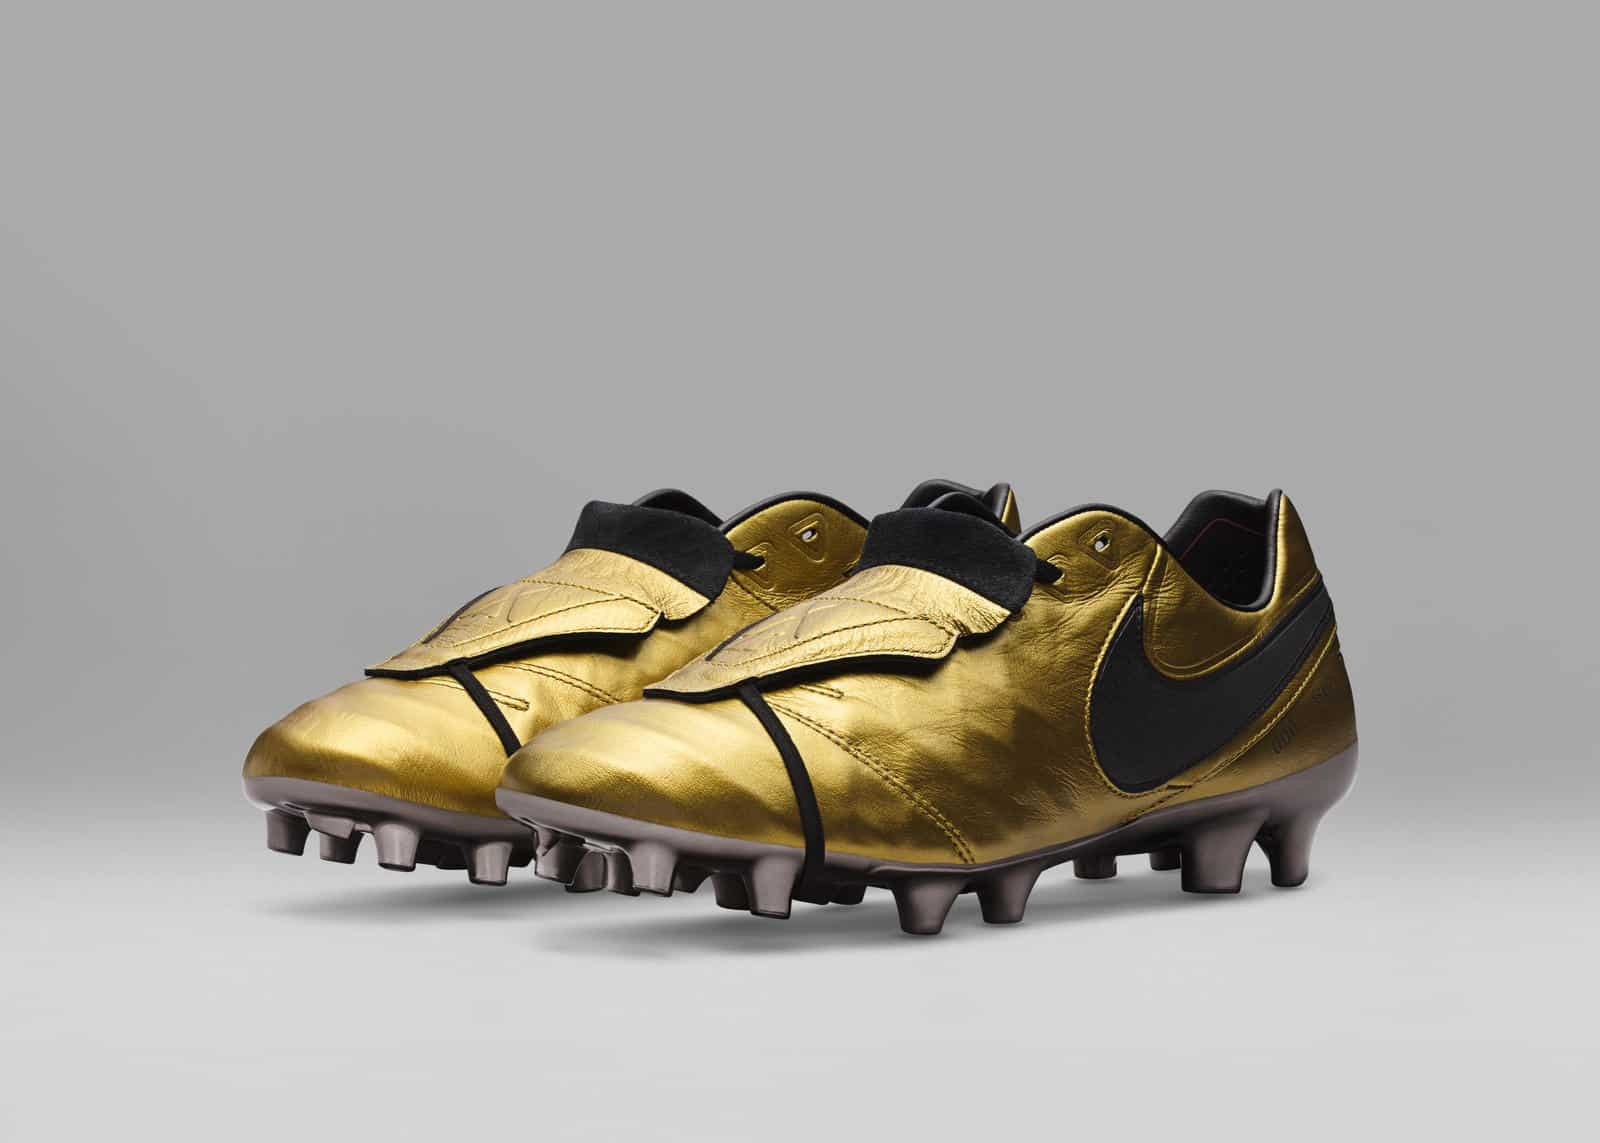 chaussure-foot-edition-limitee-nike-tiempo-totti-25-ans-as-roma-5